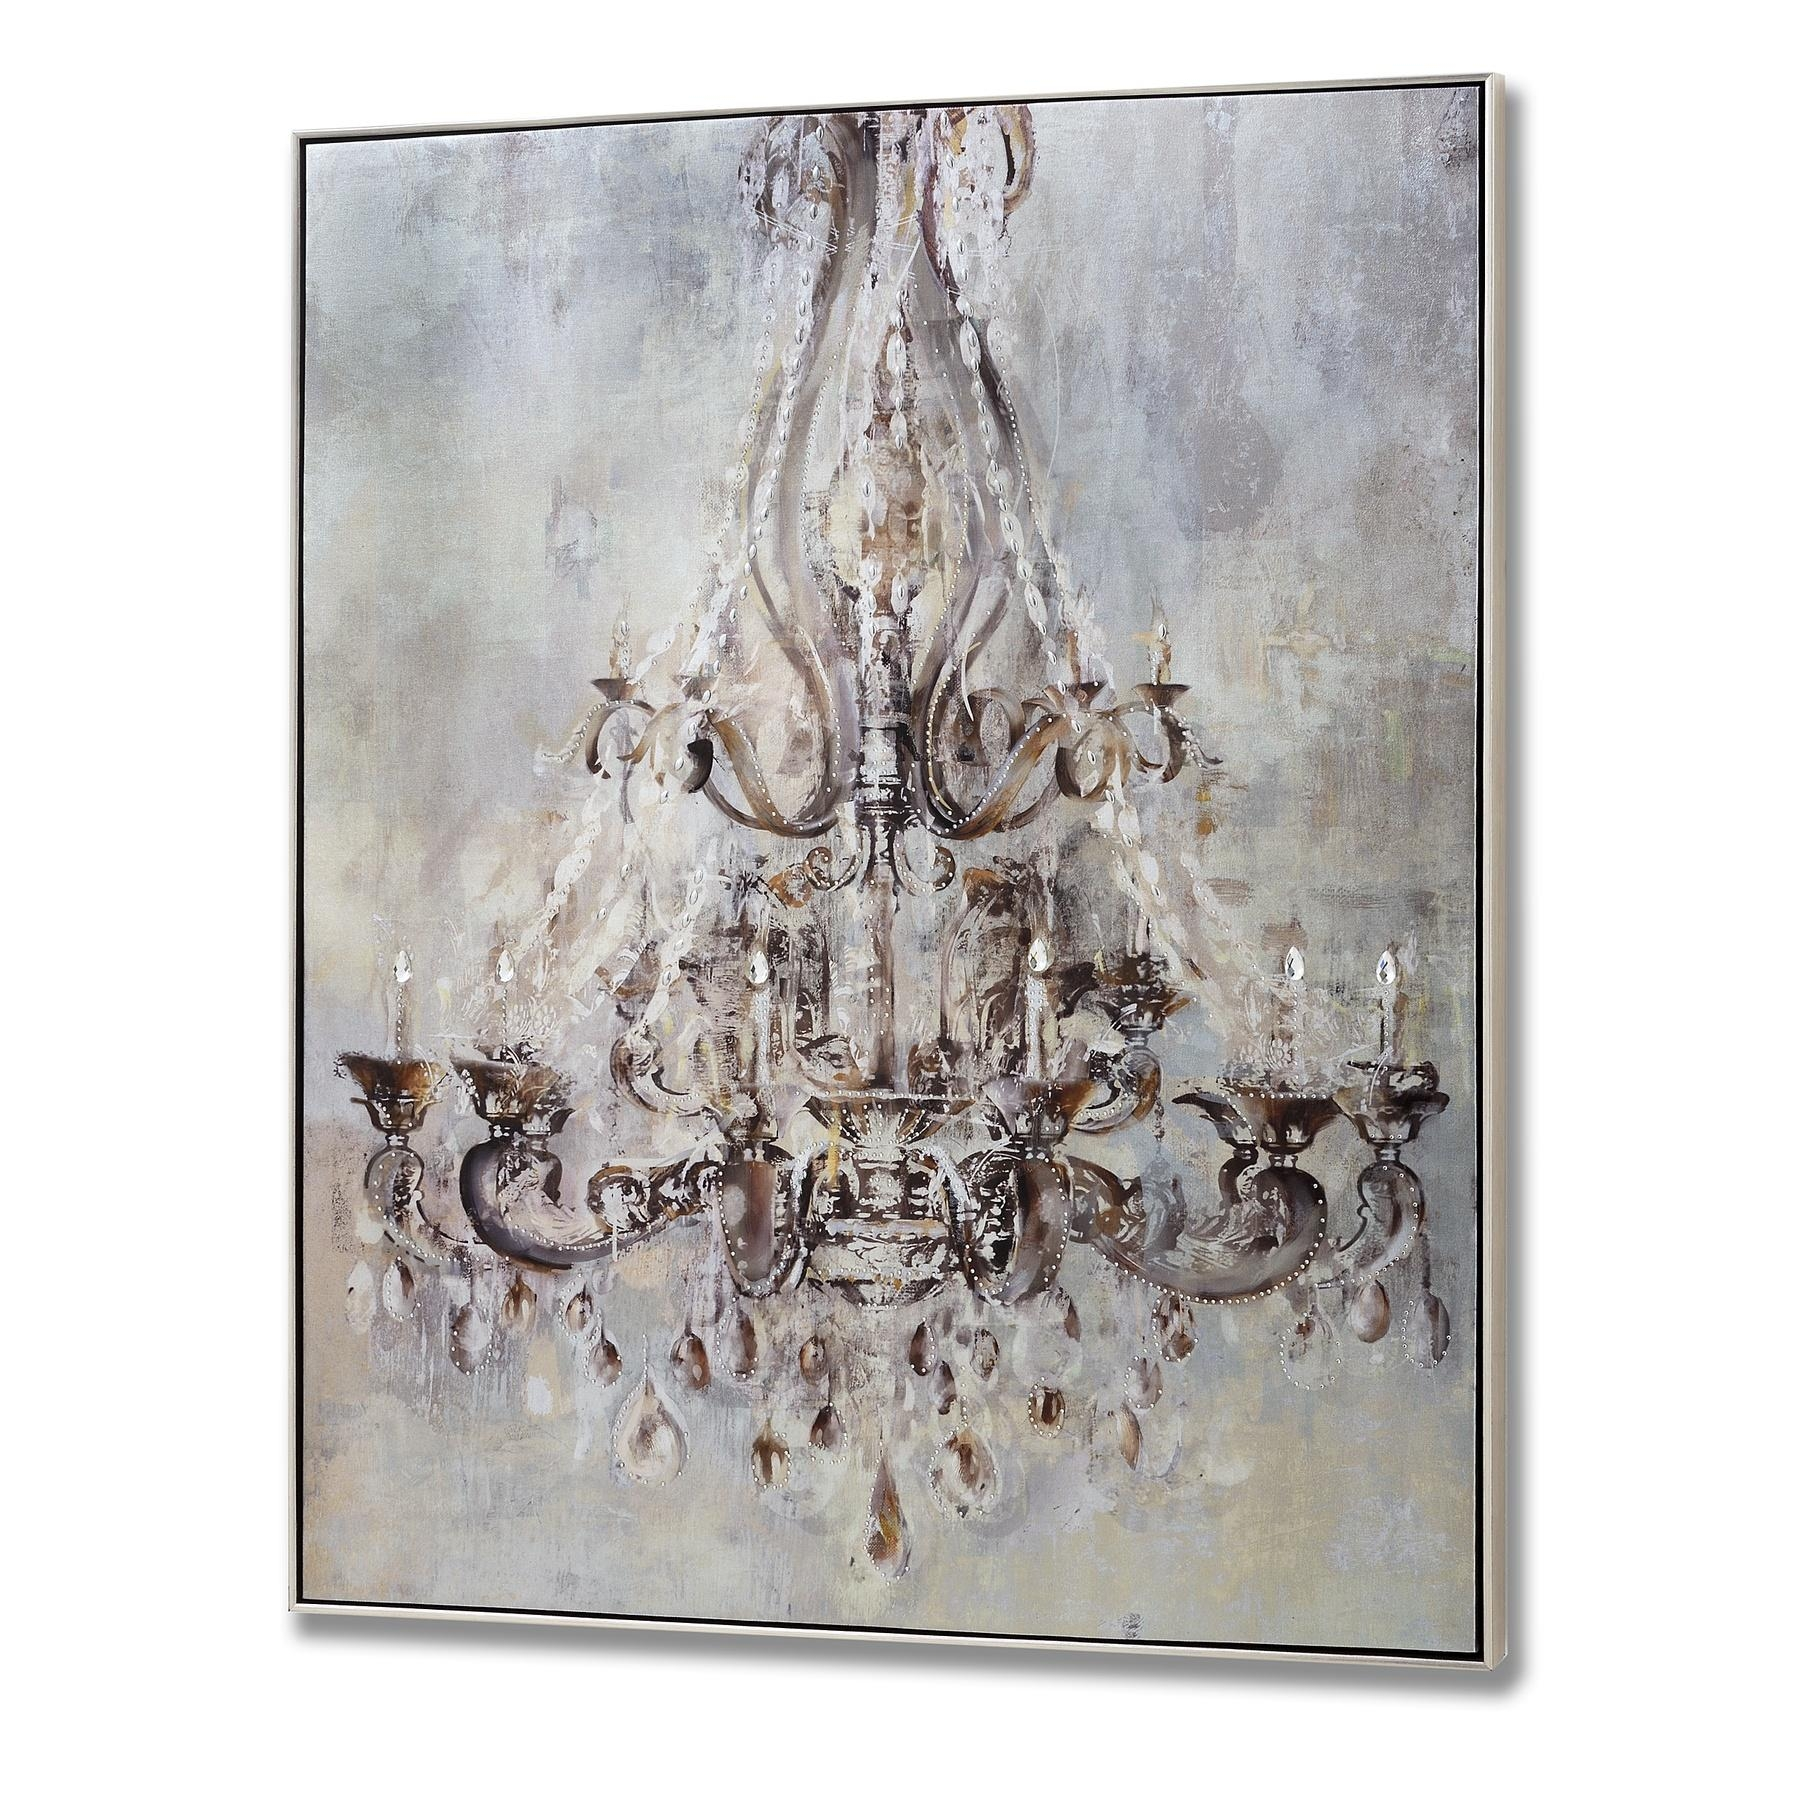 Framed Metalic Chandelier Wall Art With Metal Studs From Hill Inside Metal Framed Wall Art (View 16 of 20)